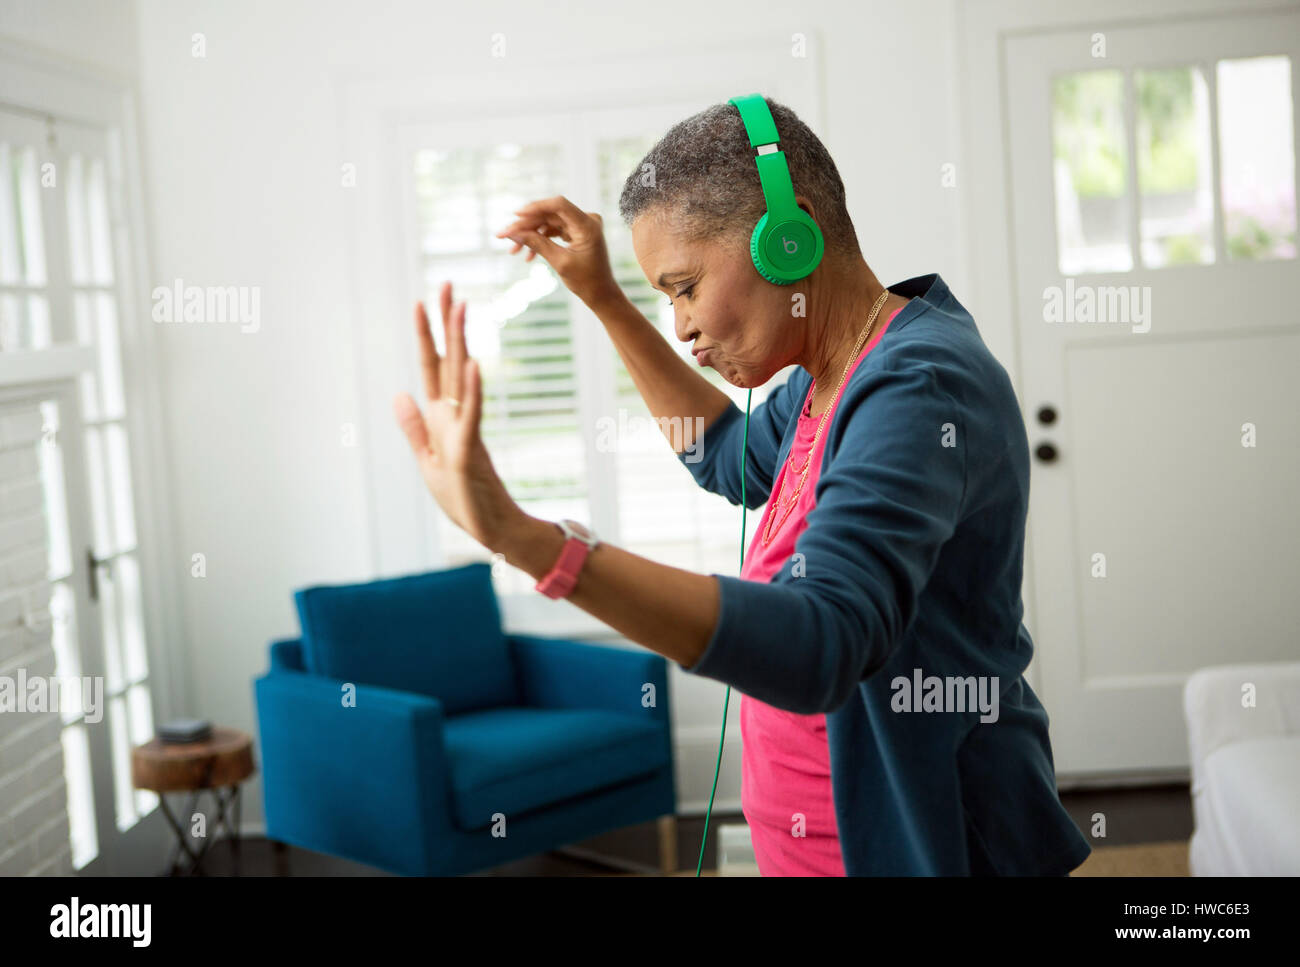 Senior woman listening to music on headphones Photo Stock